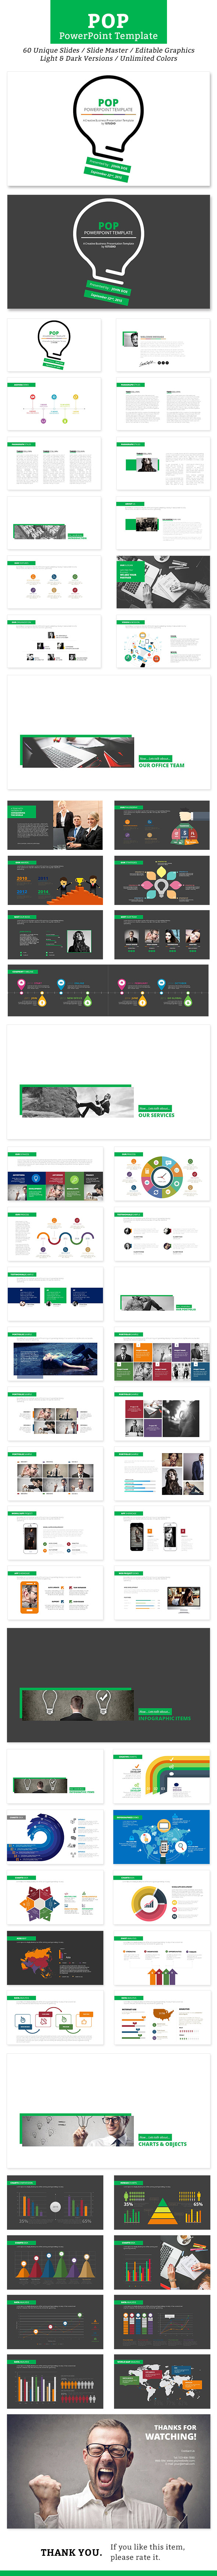 Pop PowerPoint Template - Business PowerPoint Templates